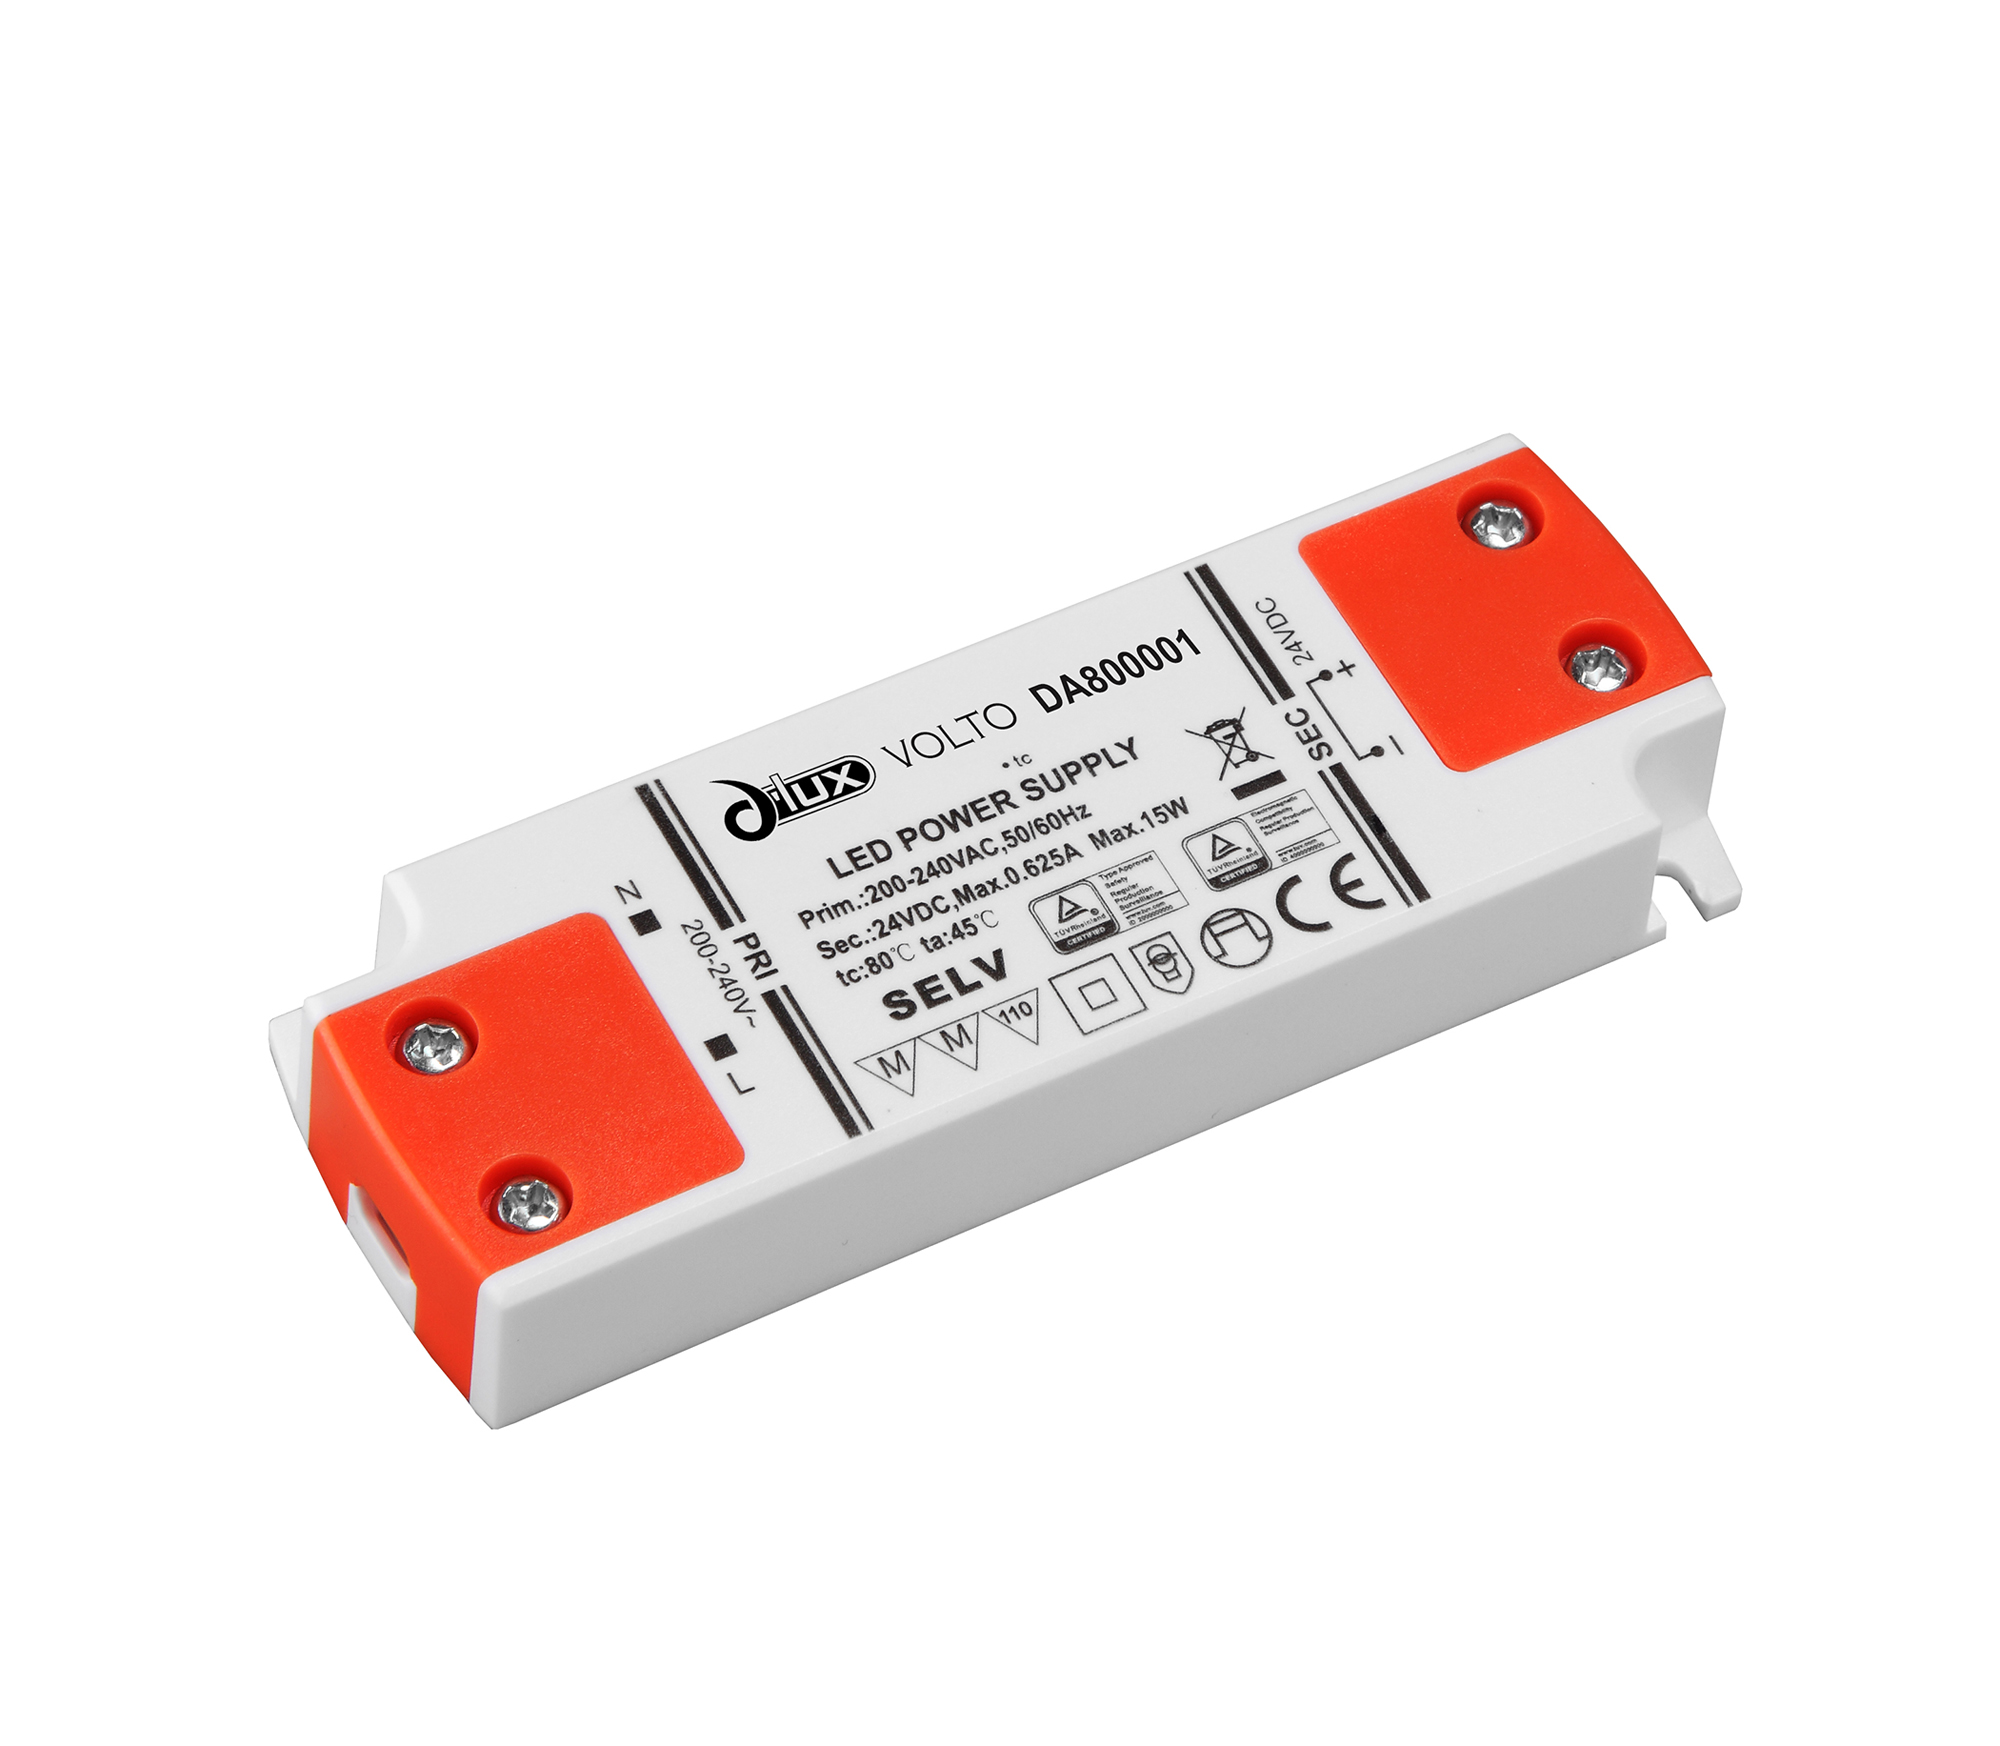 Volto Drivers Dlux Phase cut Driver